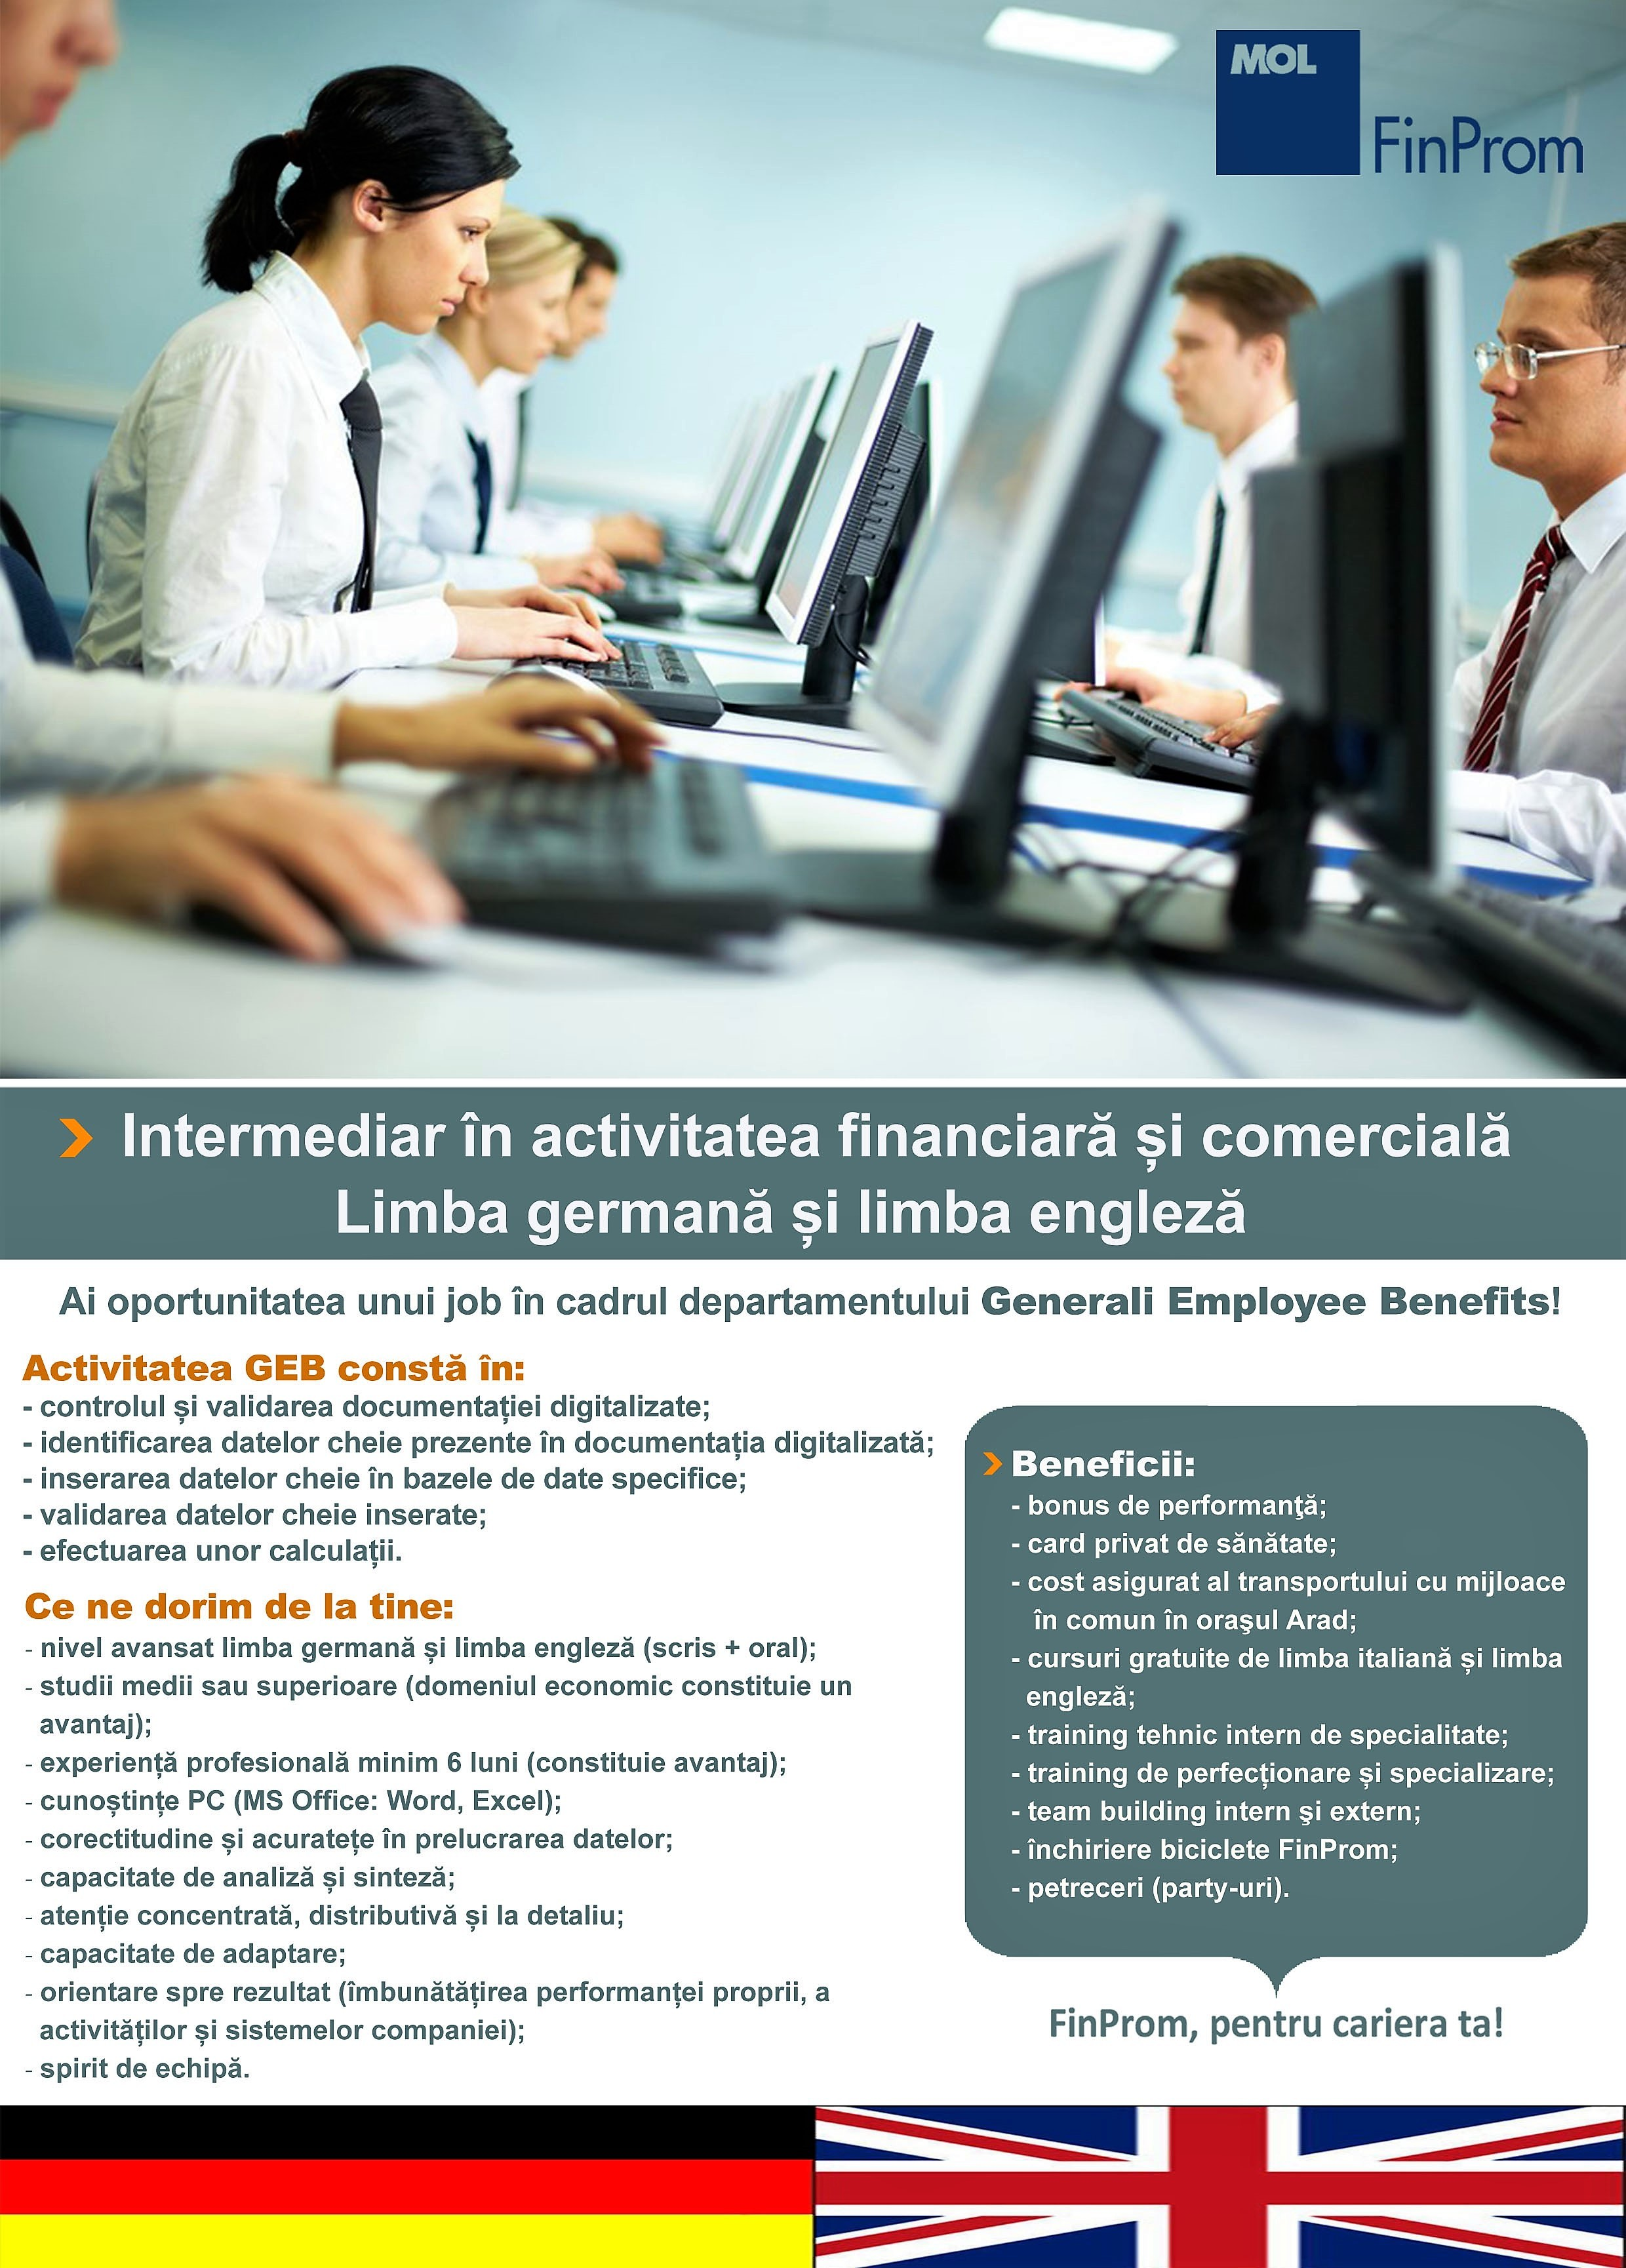 Anunt de recrutare_Intermediar germana GEB